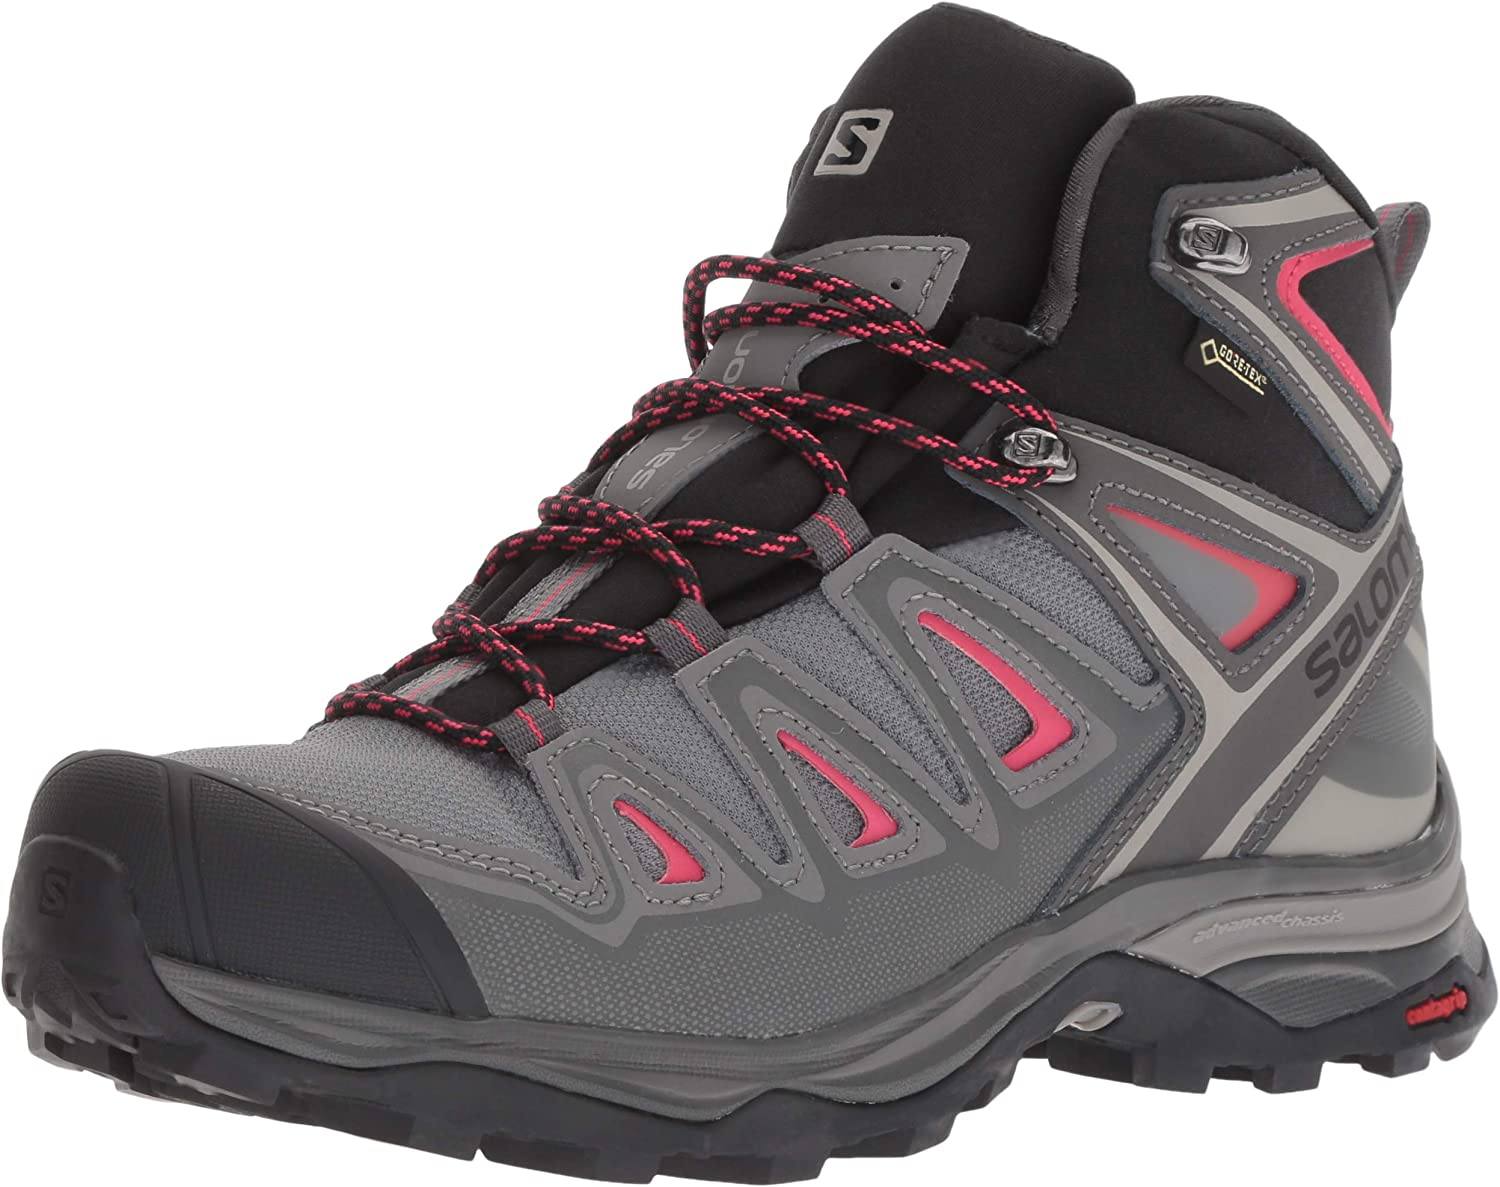 Details about Salomon XUltra 3 Prime GTX Womens Walking Shoes Trainers Black Ladies Footwear